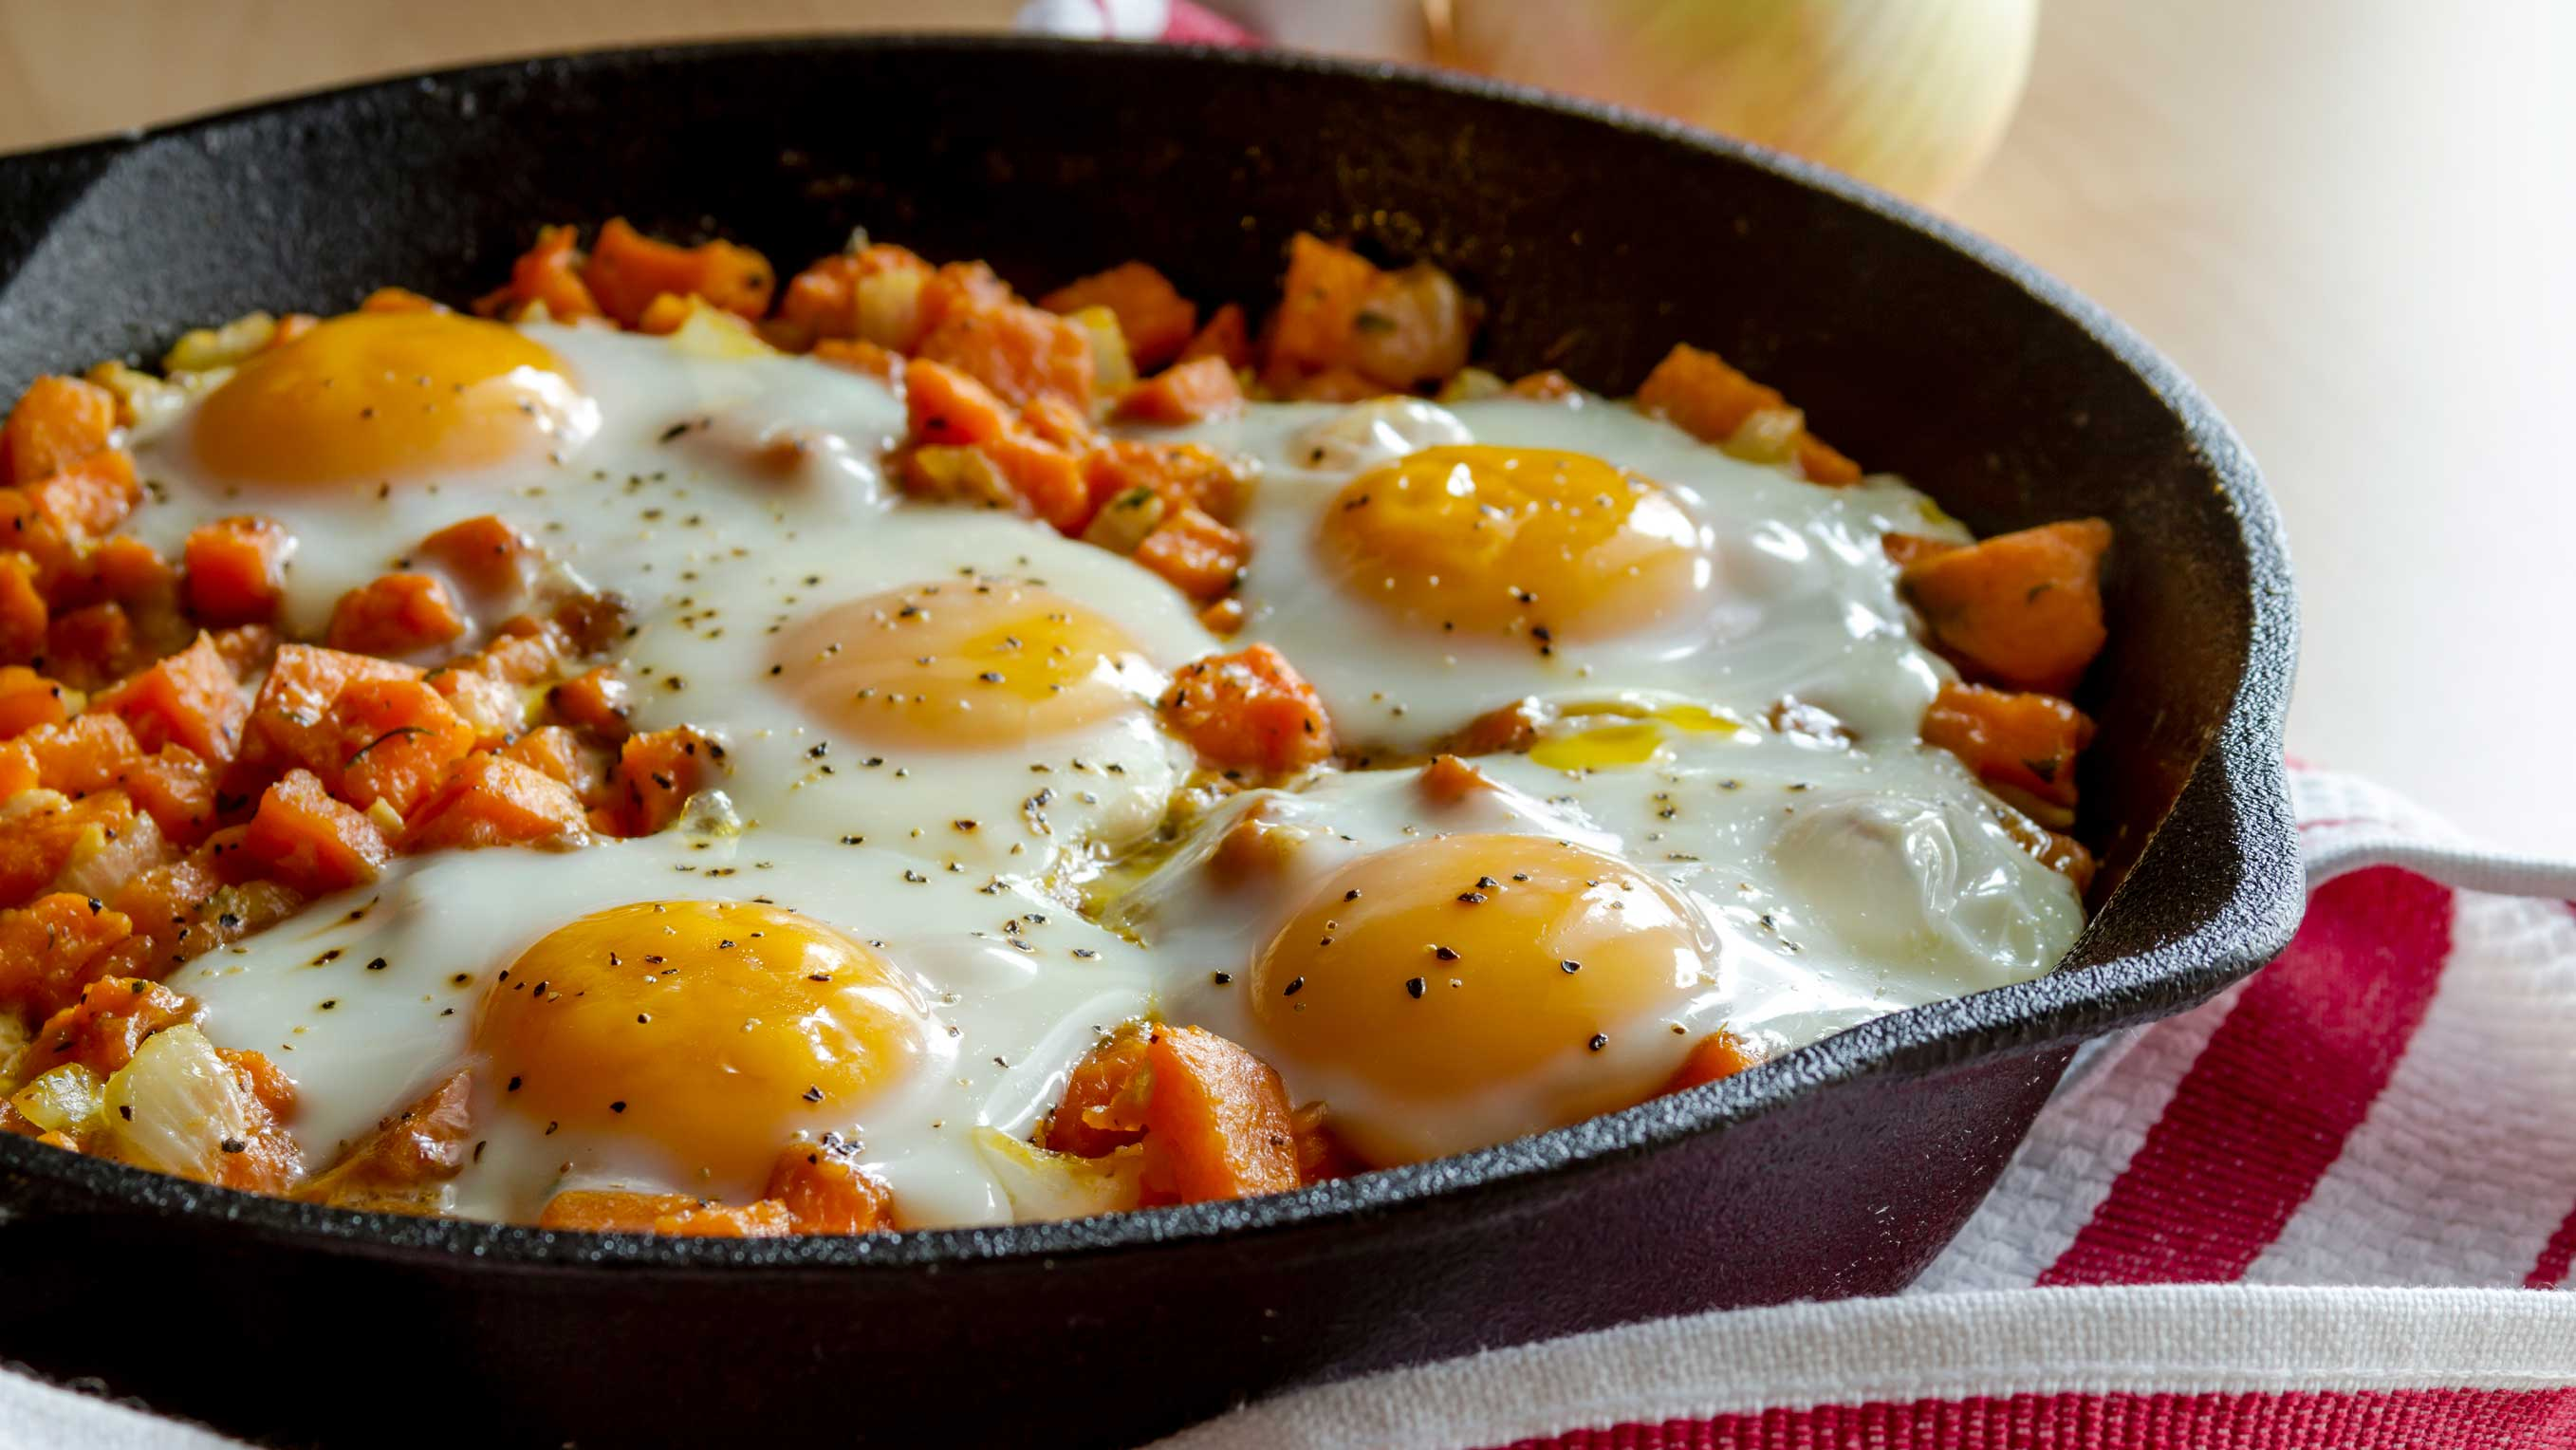 What to eat for breakfast 20